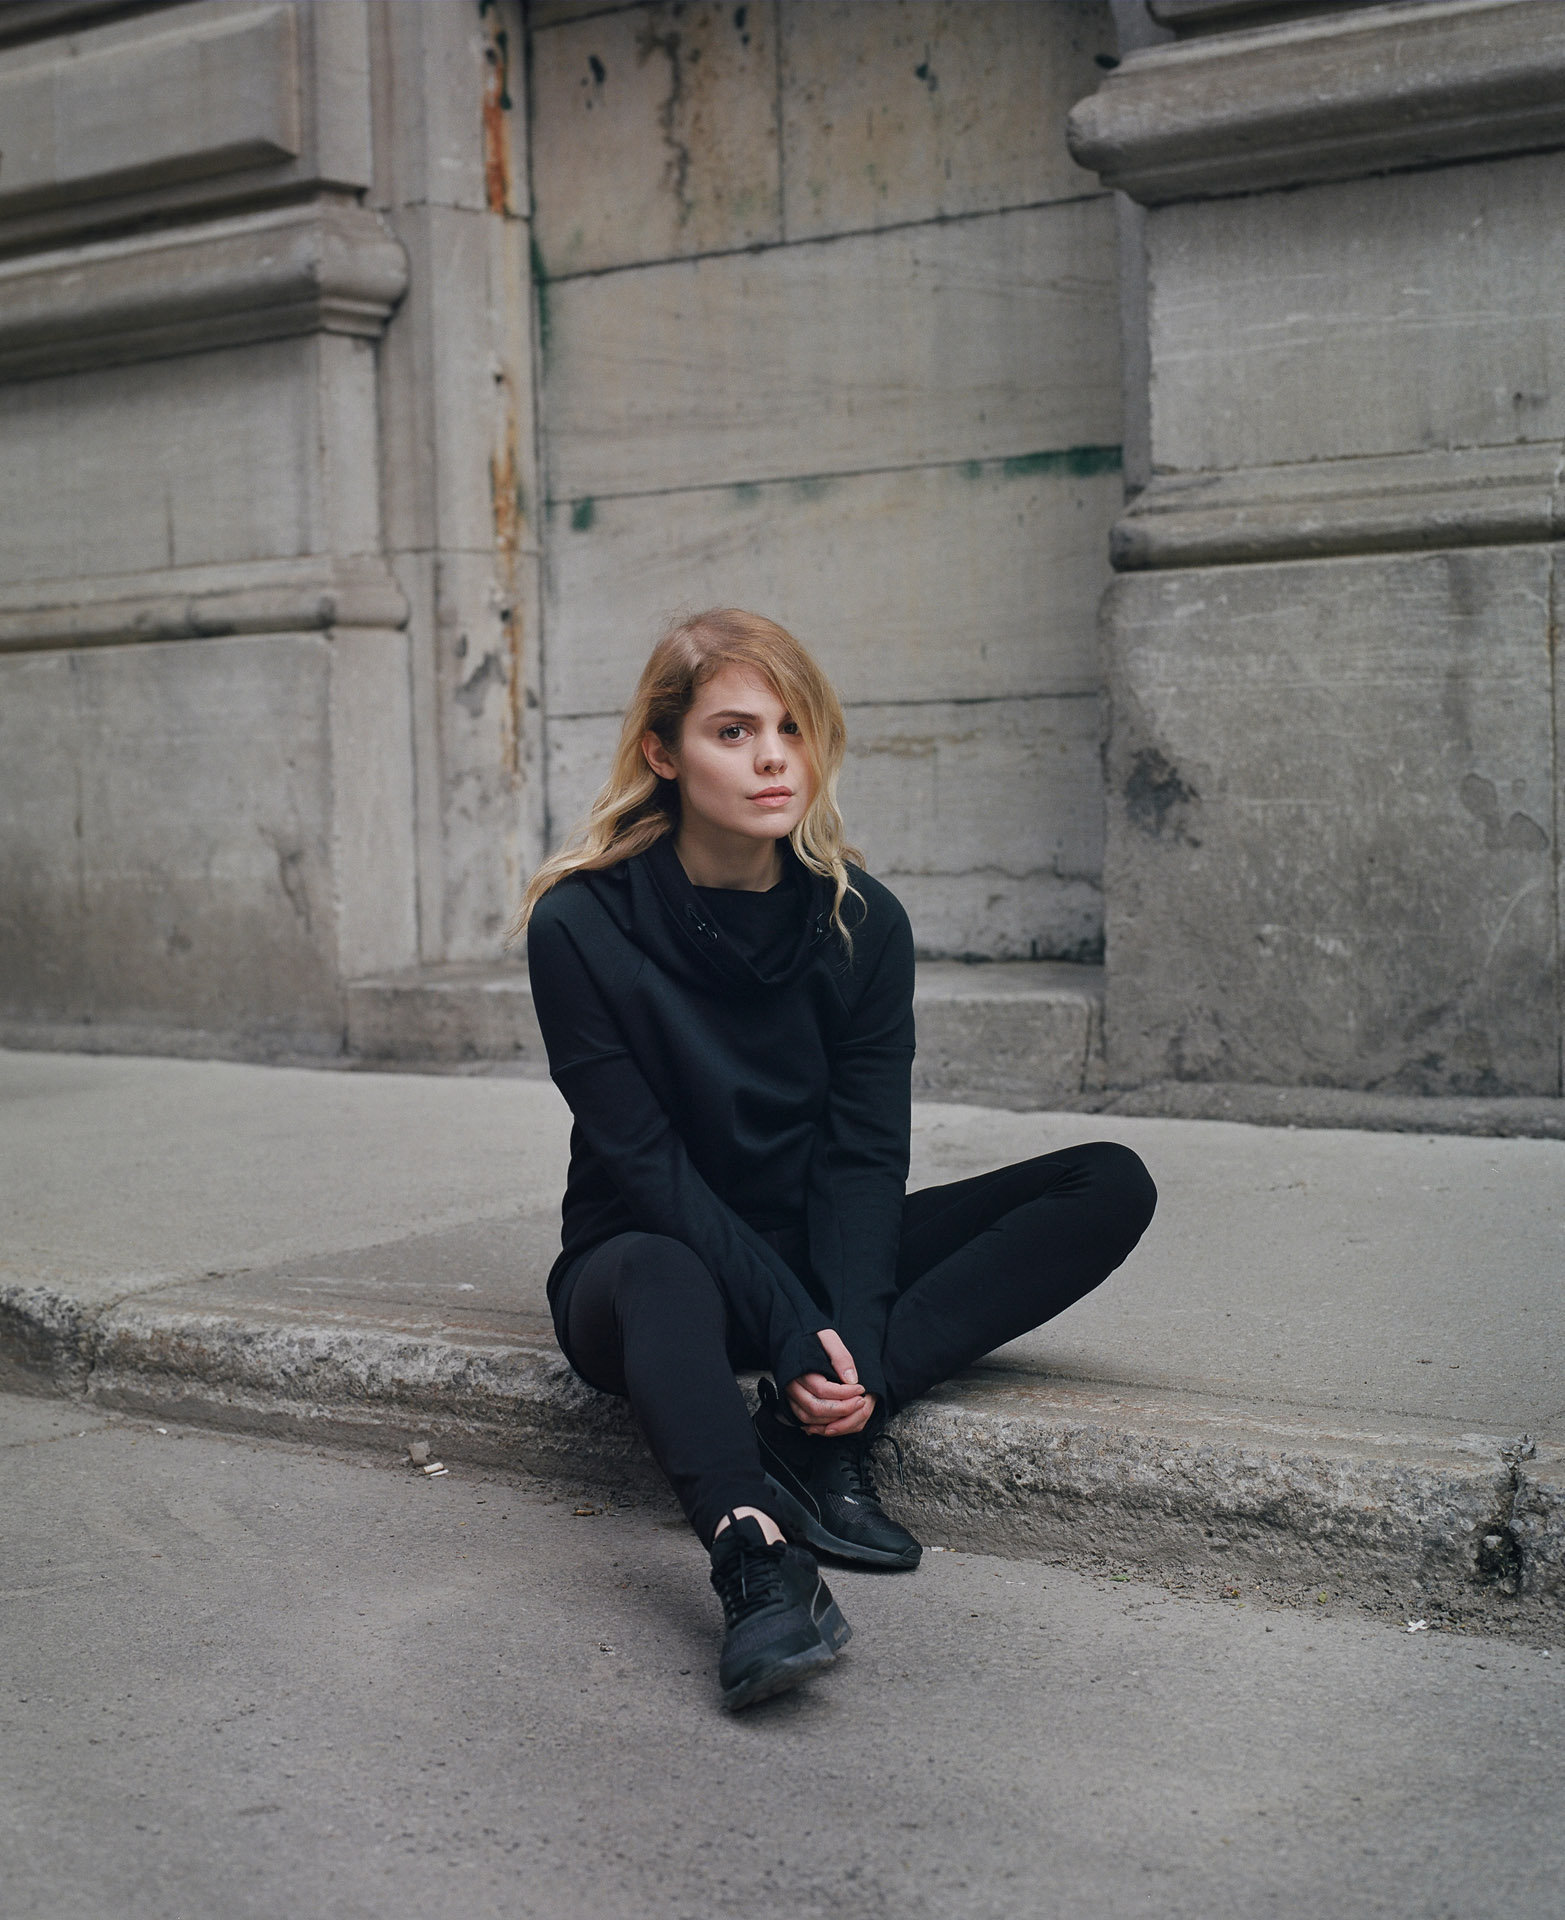 singer Coeur de Pirate sitting in the street no makeup wearing all black knit wear with black sneakers looking at camera by Maxyme G Delisle for Loulou Magazine